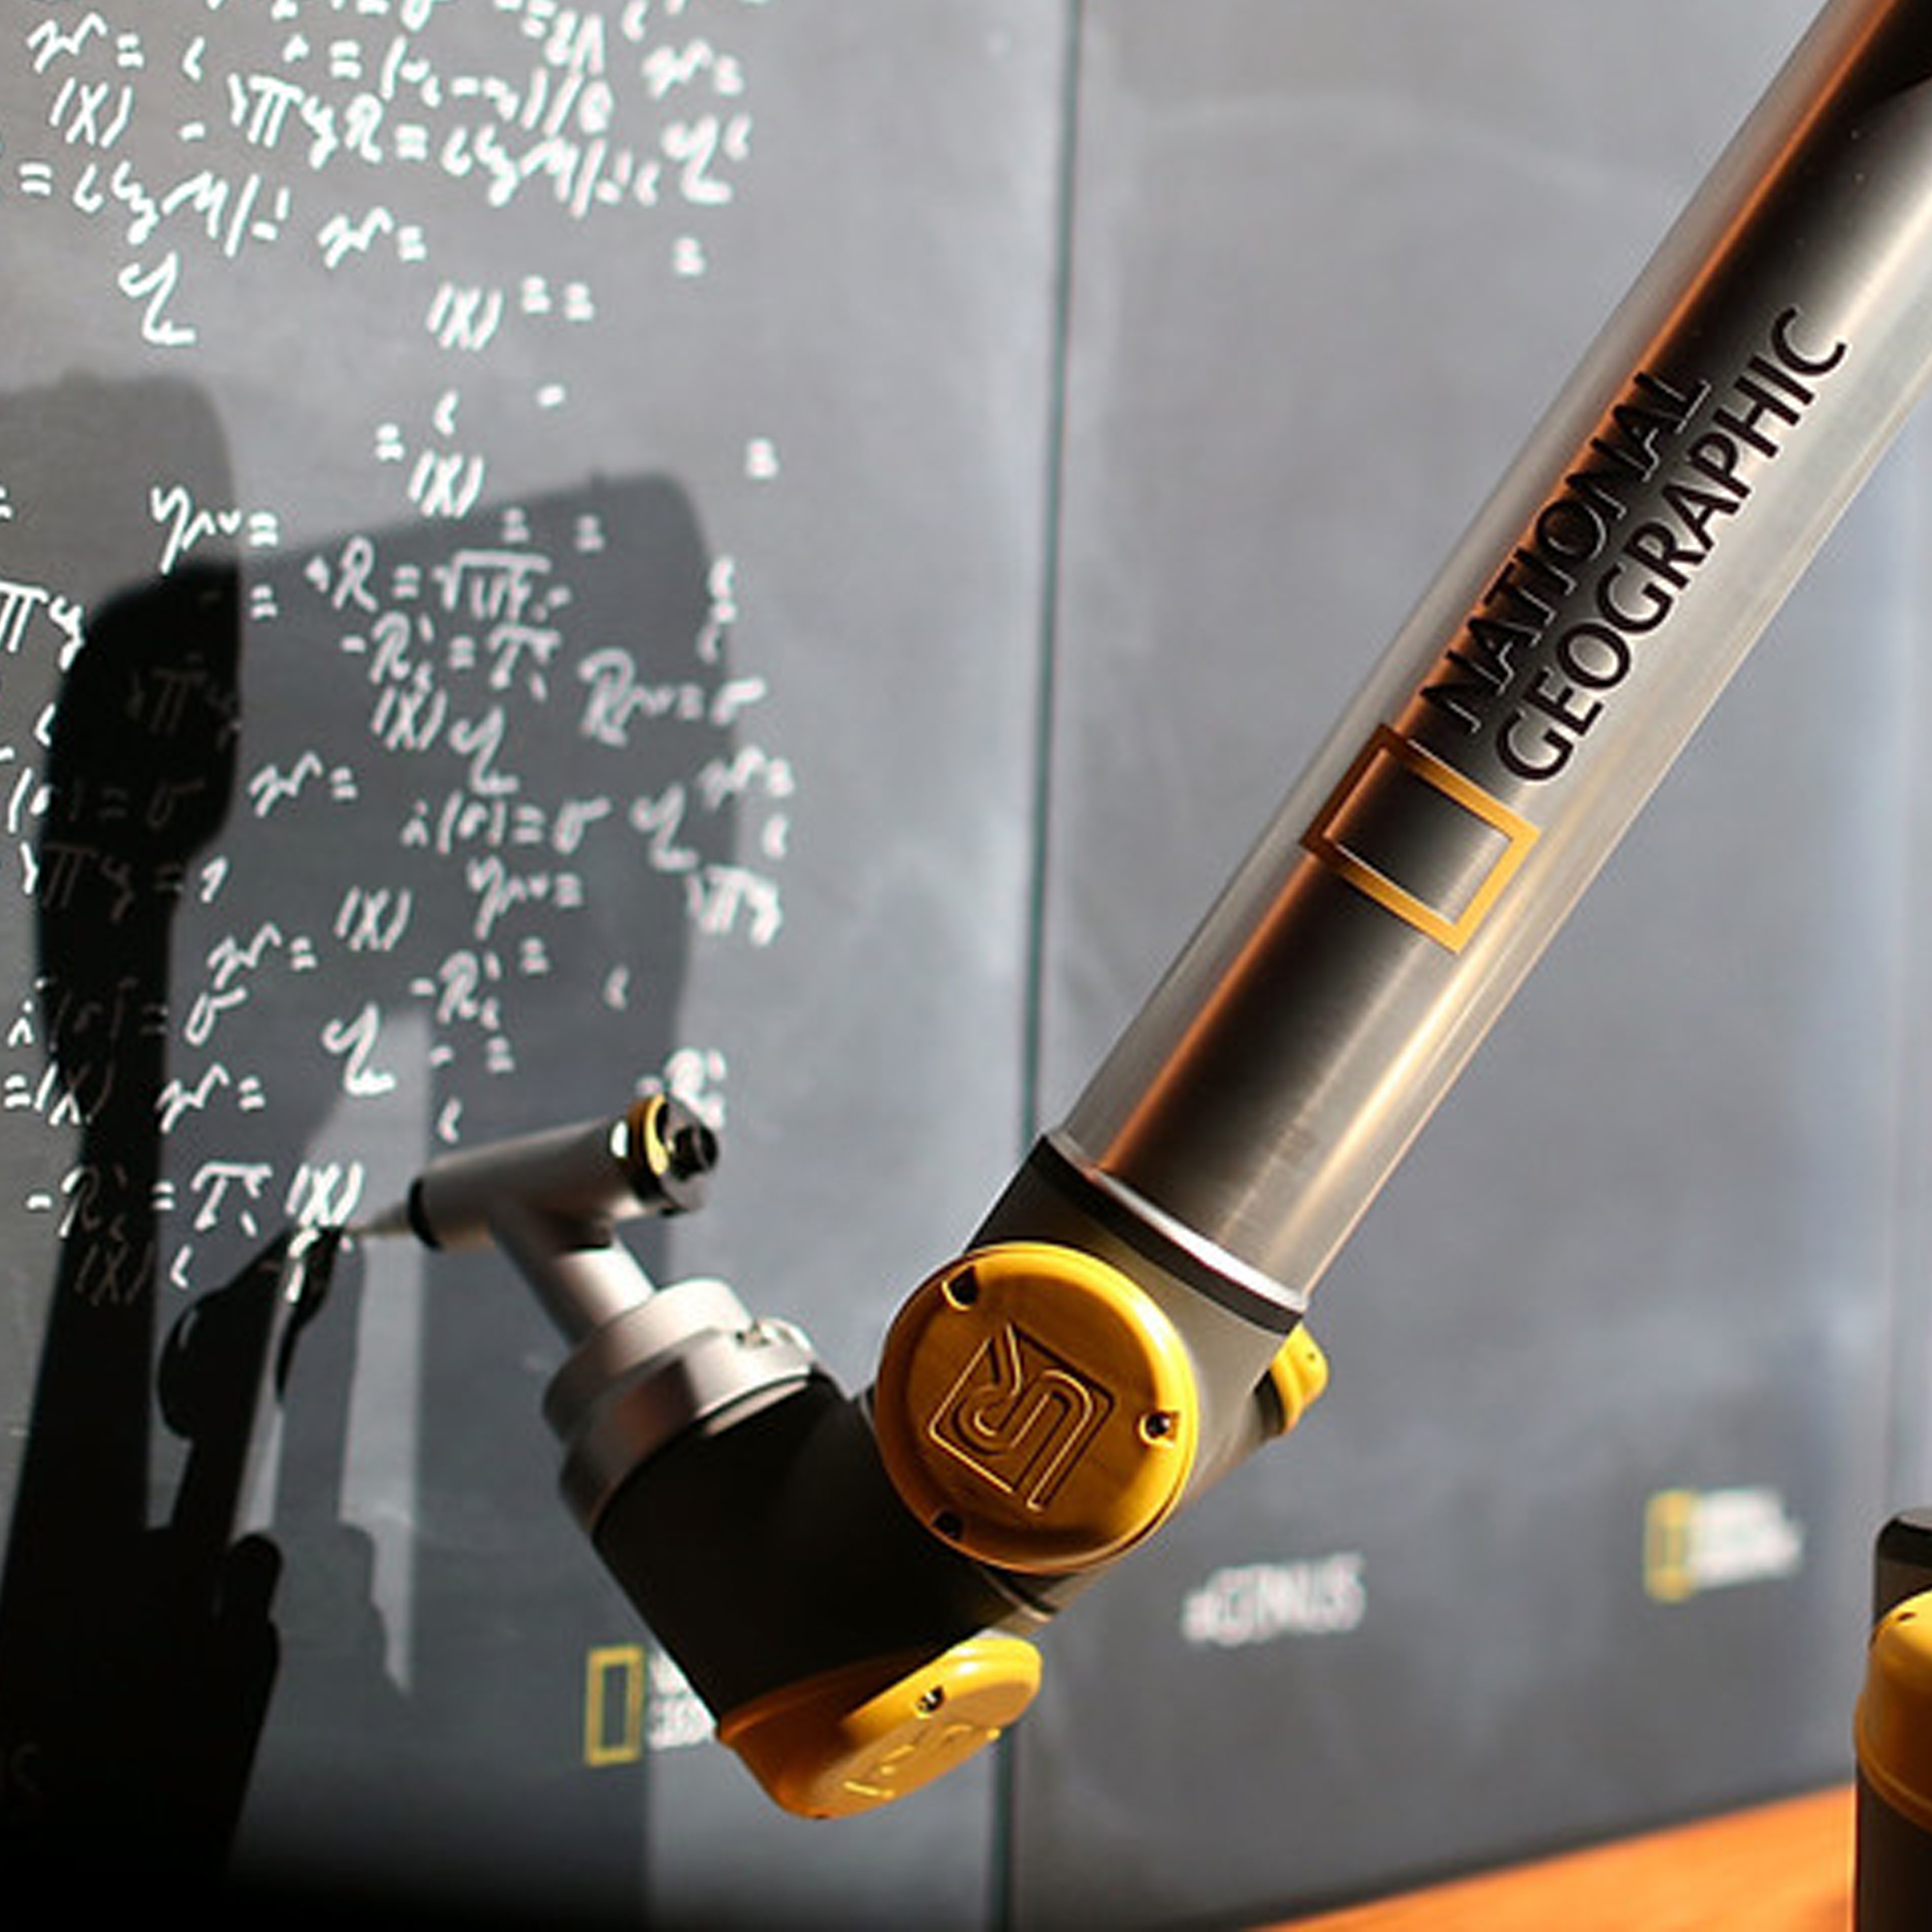 NATIONAL GEOGRAPHIC CHALKBOARD - A chalkboard with a robotic arm sketches selfies using Einstein's handwriting and equations.